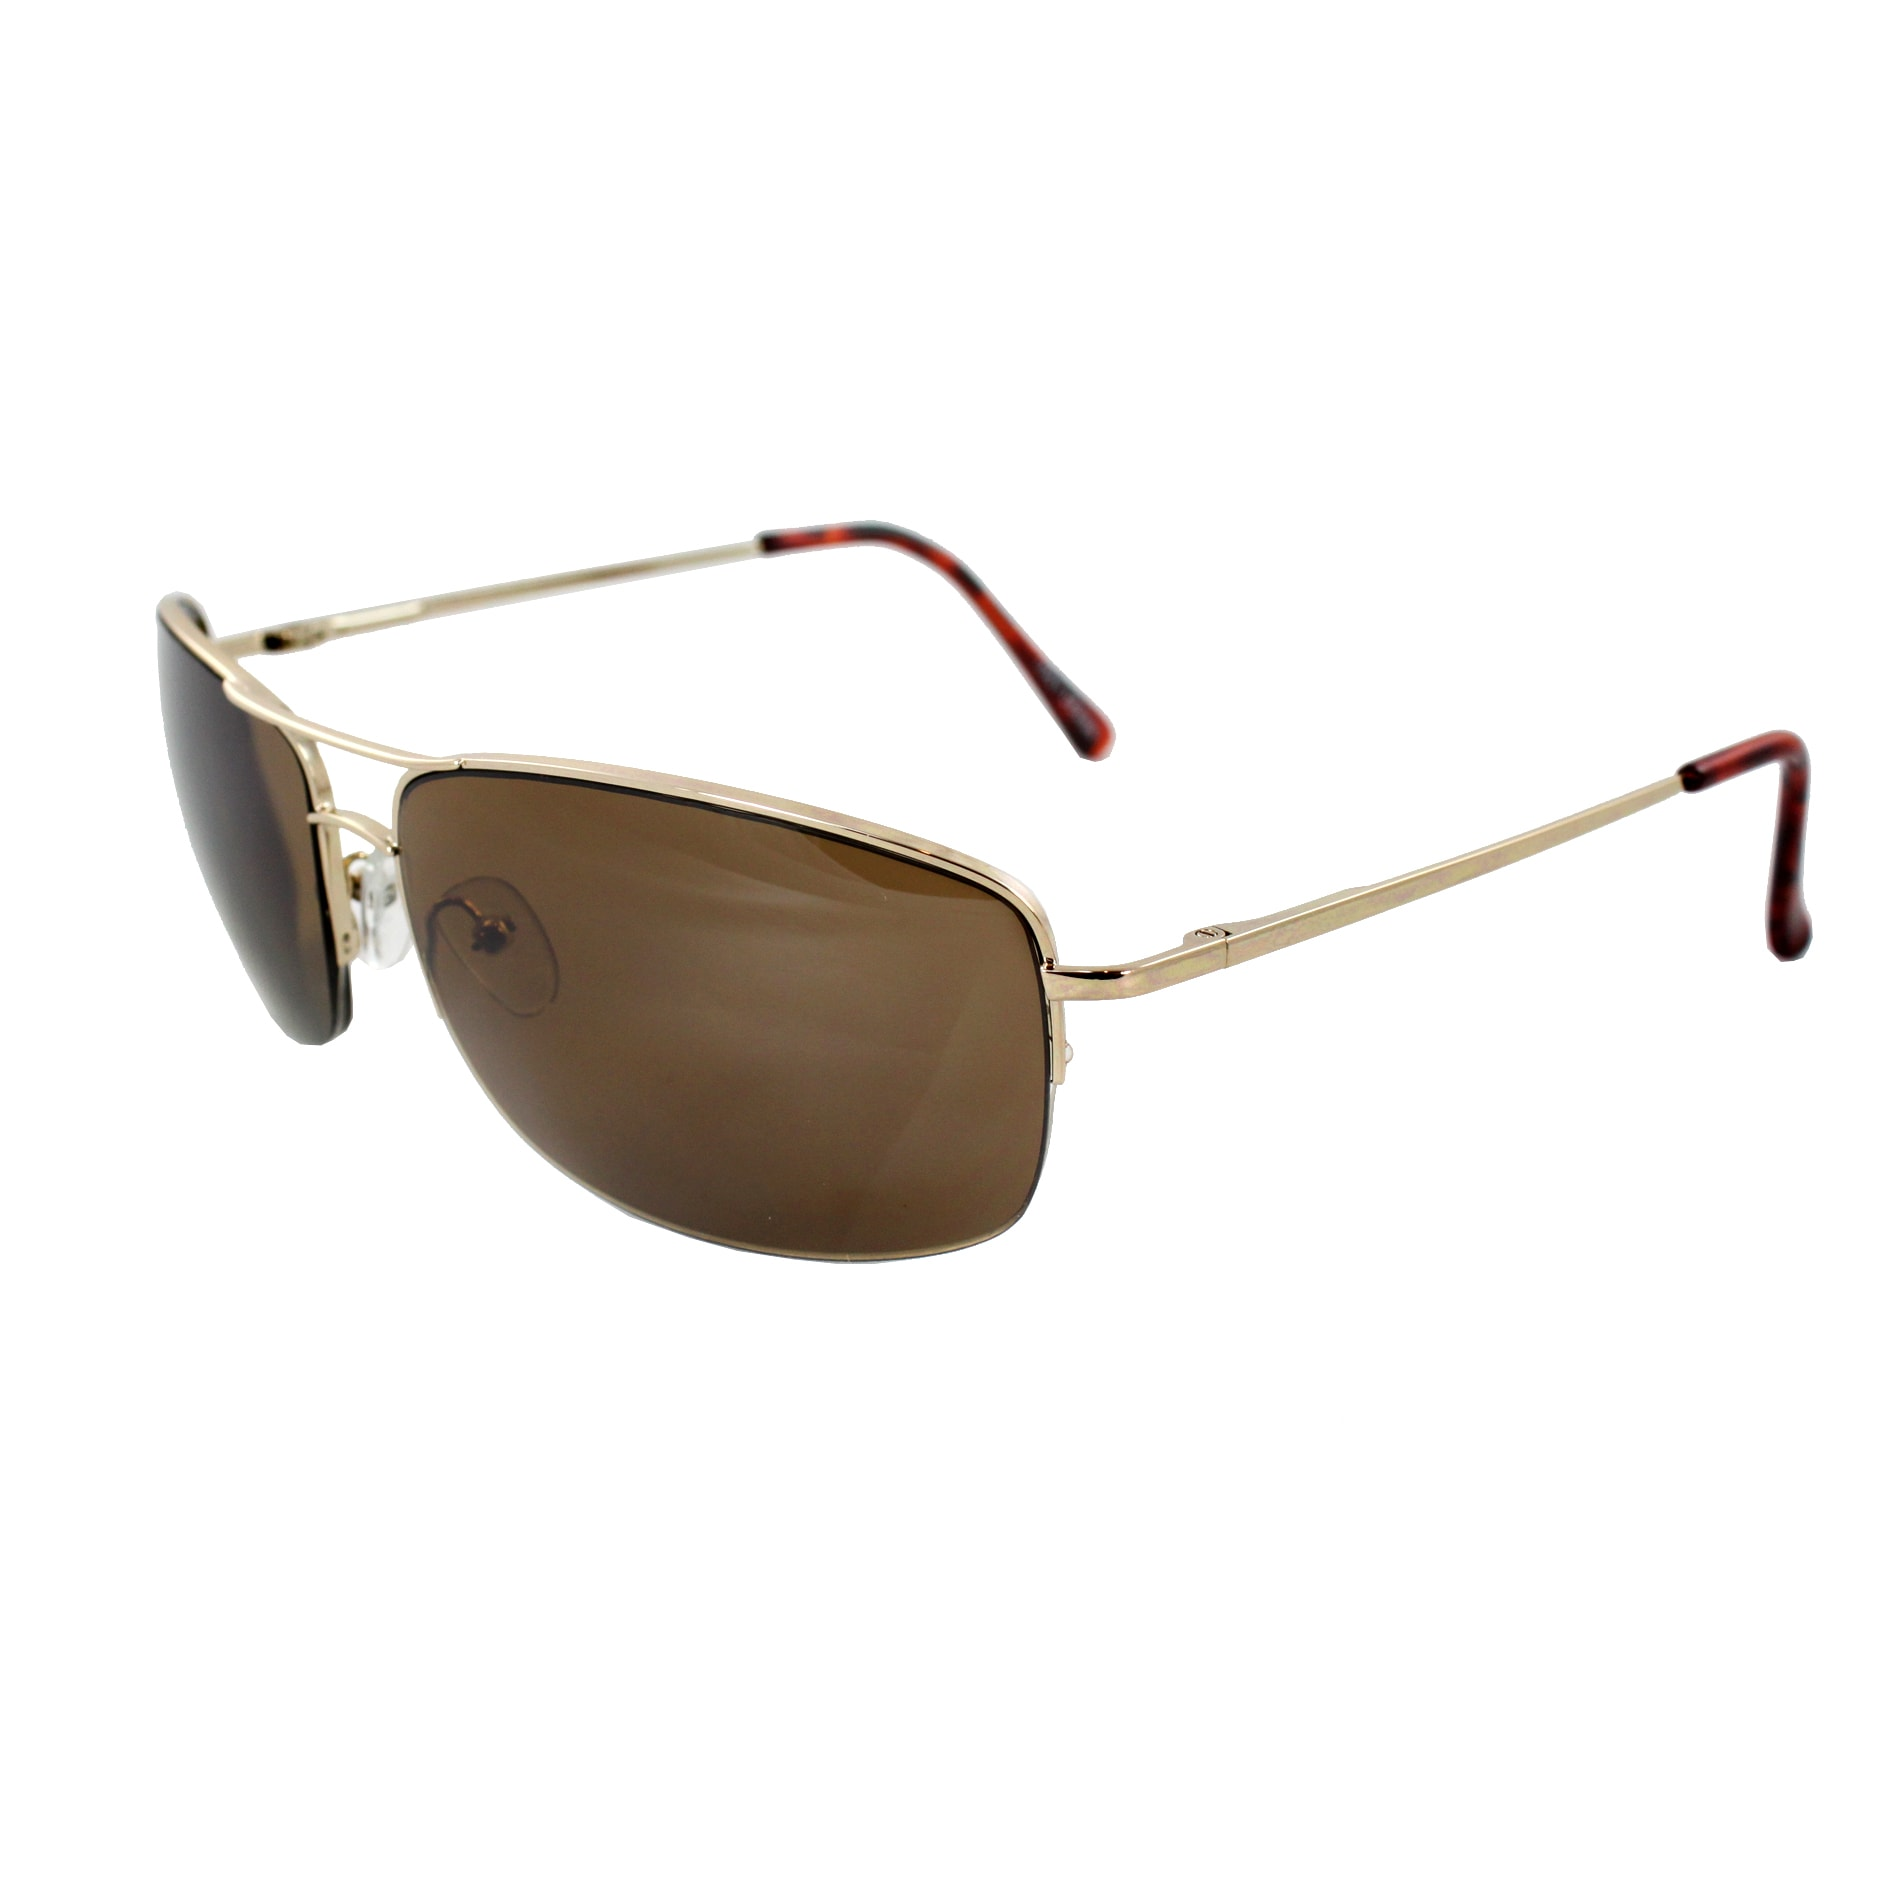 The Mens Brown Sunglasses are part of our collection of designer eyewear, glasses, sunglasses, contact lenses and more. We offer the best designer names like Mens Brown Sunglasses. You've come to the right place if you want to get yourself something nice for the weekend or even on a weekday.